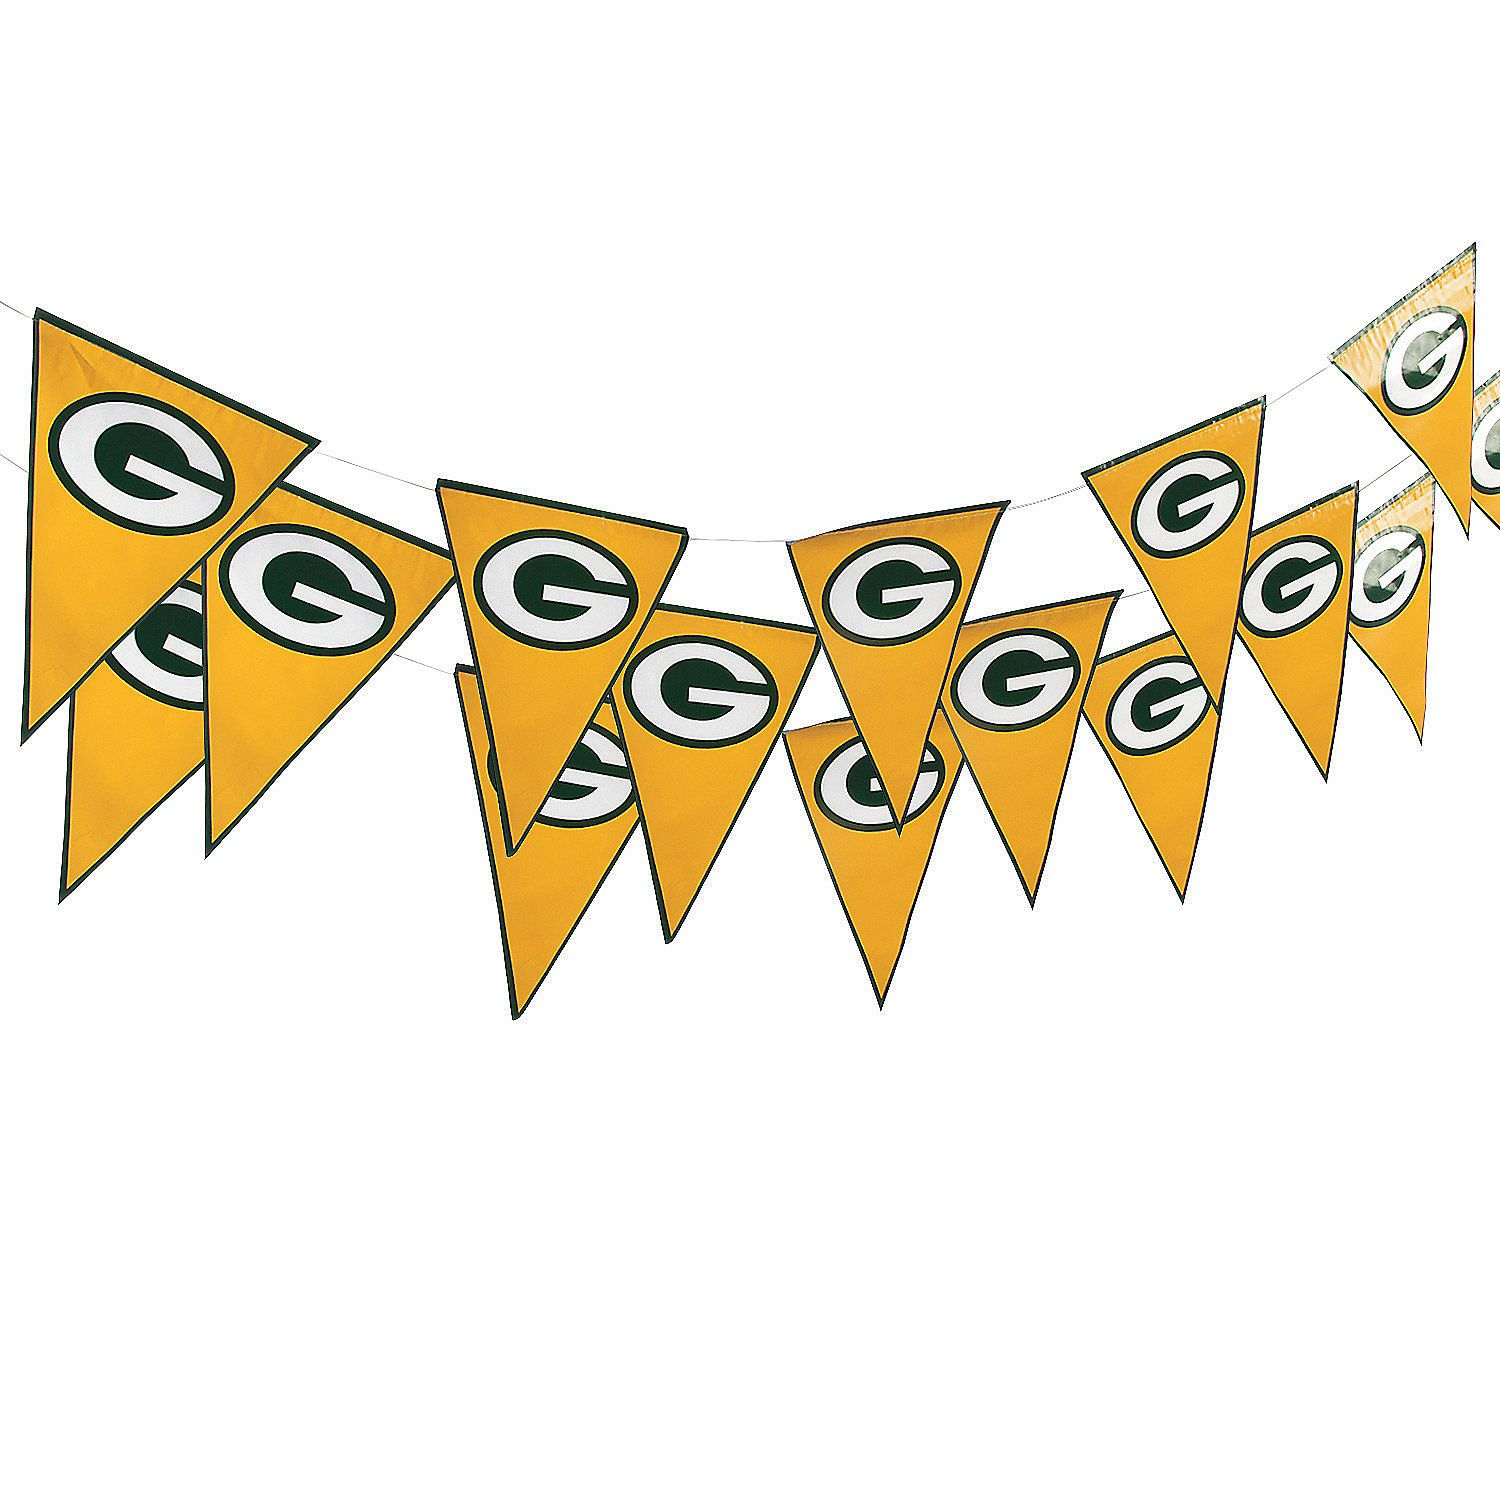 Nfl 174 Green Bay Packers 8482 Pennant Banner Orientaltrading Com Pennant Banners Nfl Green Bay Green Bay